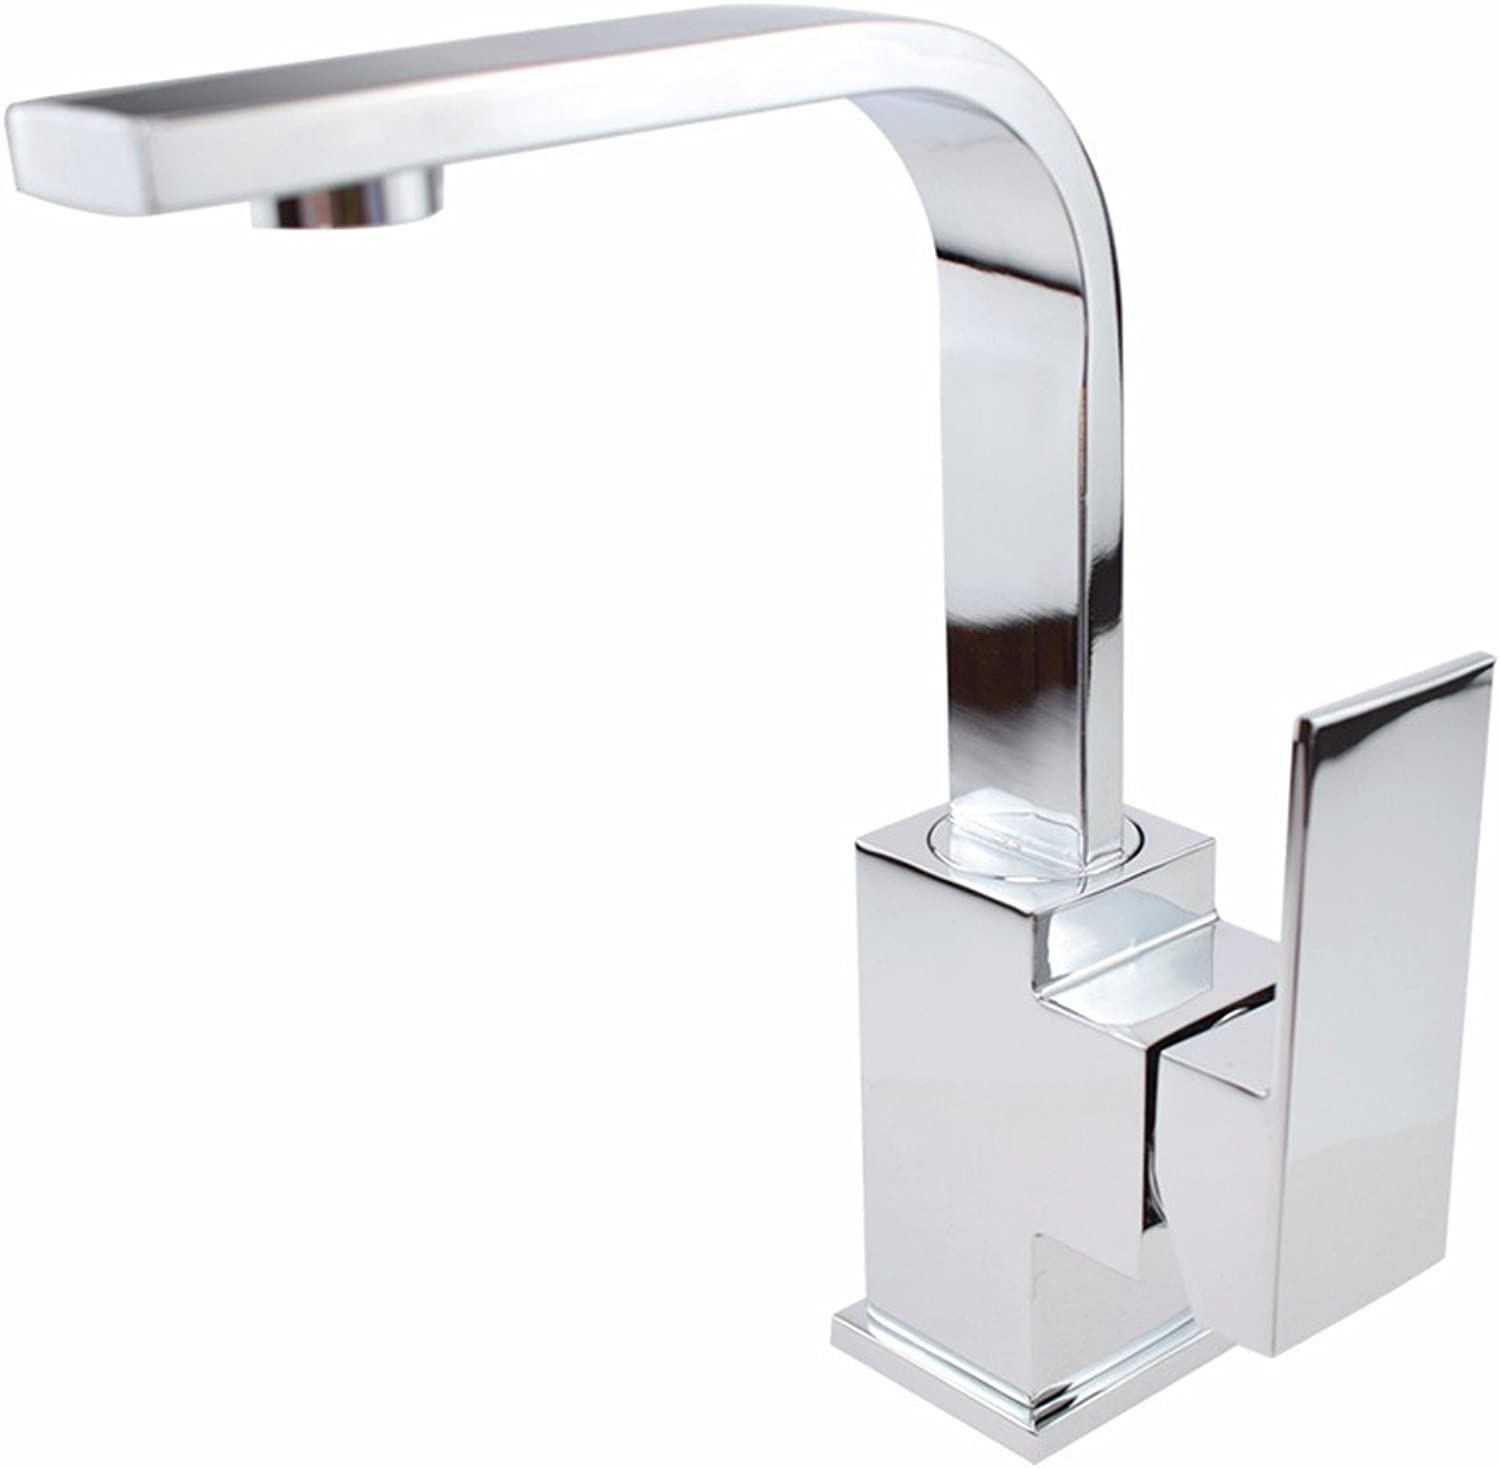 Hlluya Professional Sink Mixer Tap Kitchen Faucet Bathroom sinks square single hole brass body redation faucet basin wash basin basin and cold water taps, water faucet light panel